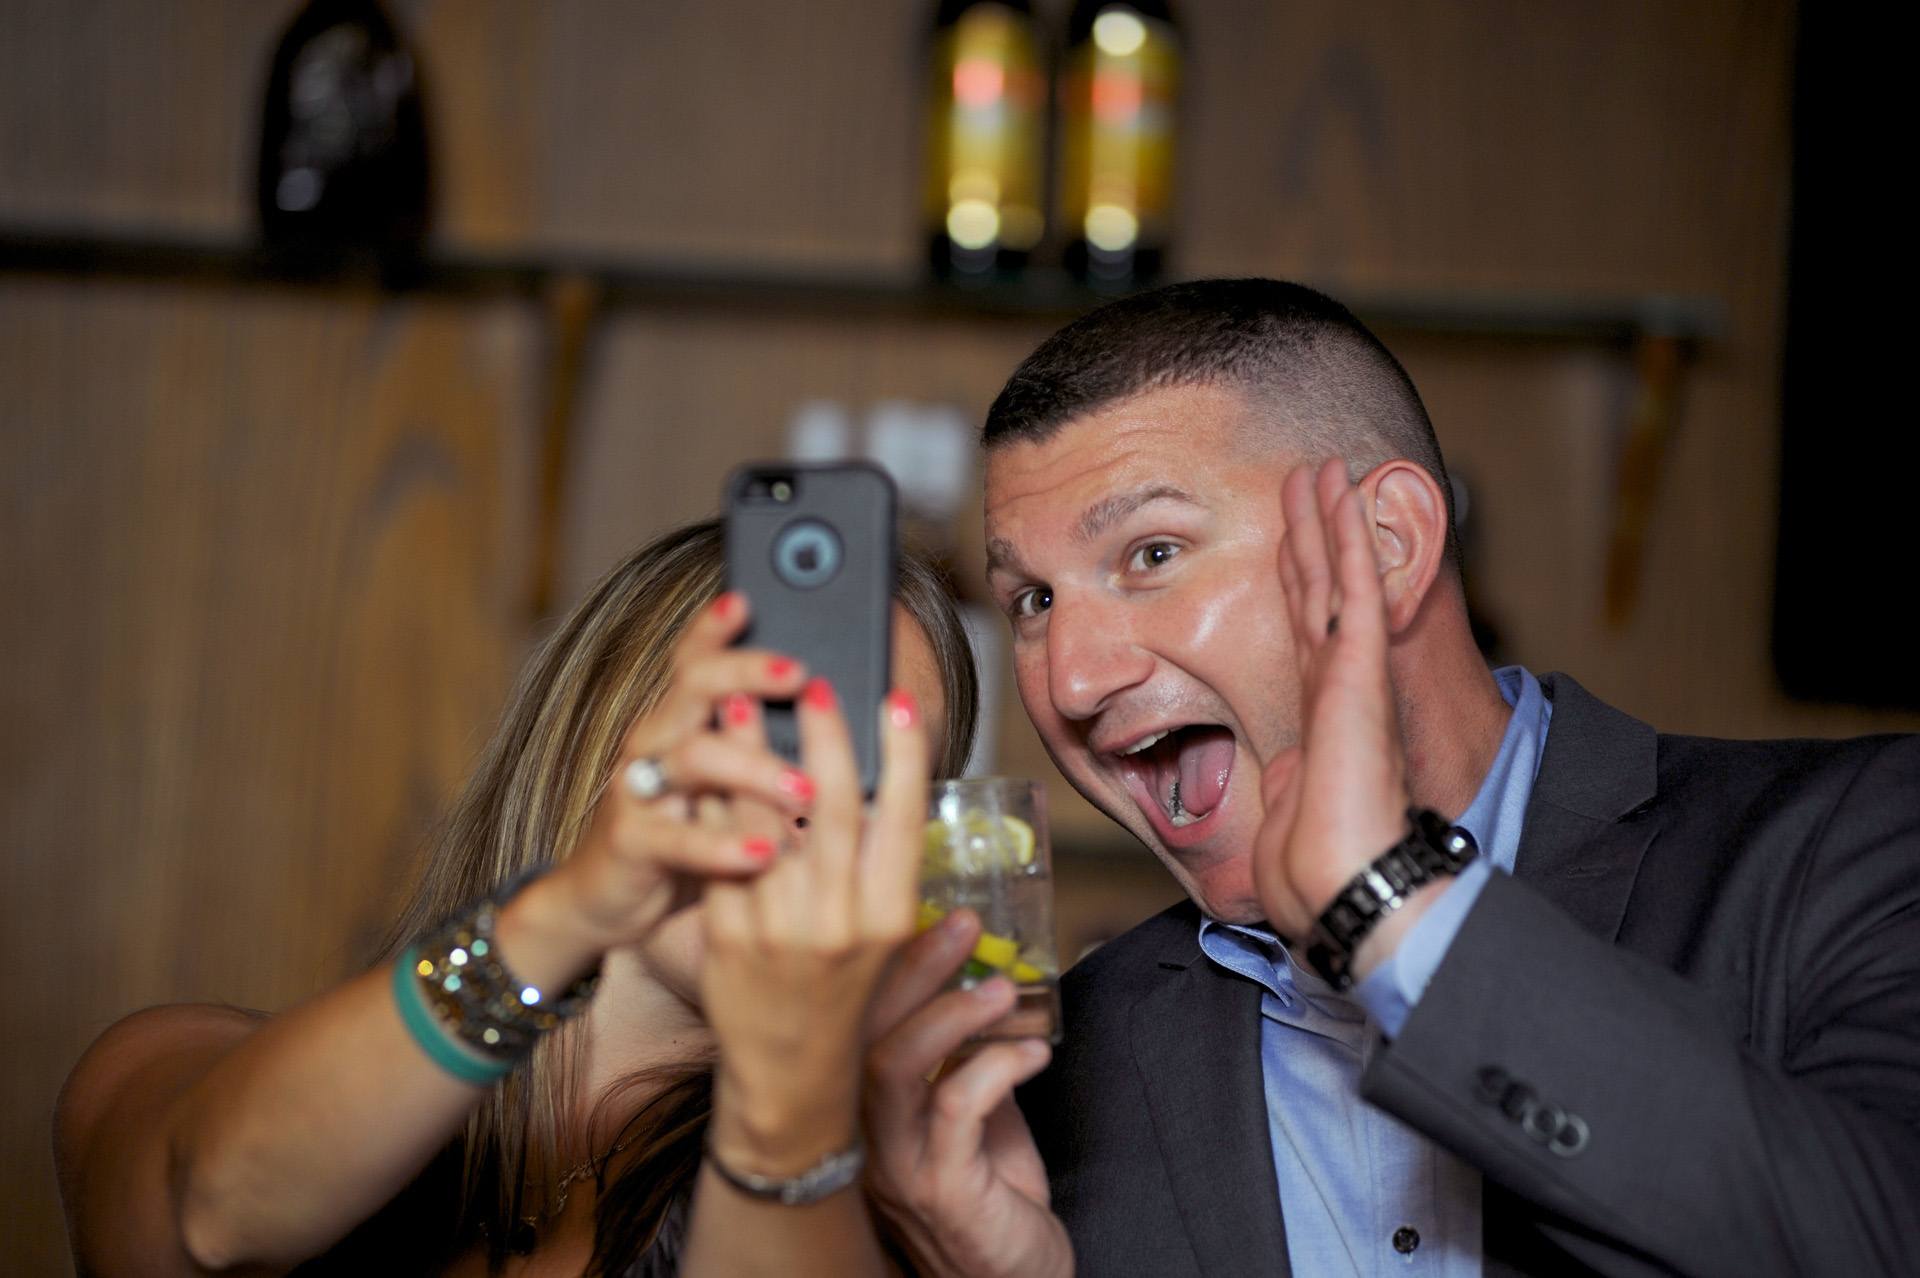 Pine Trace Golf Club wedding photographer's photo of several guests taking selfless at the Pine Trace Golf Club.